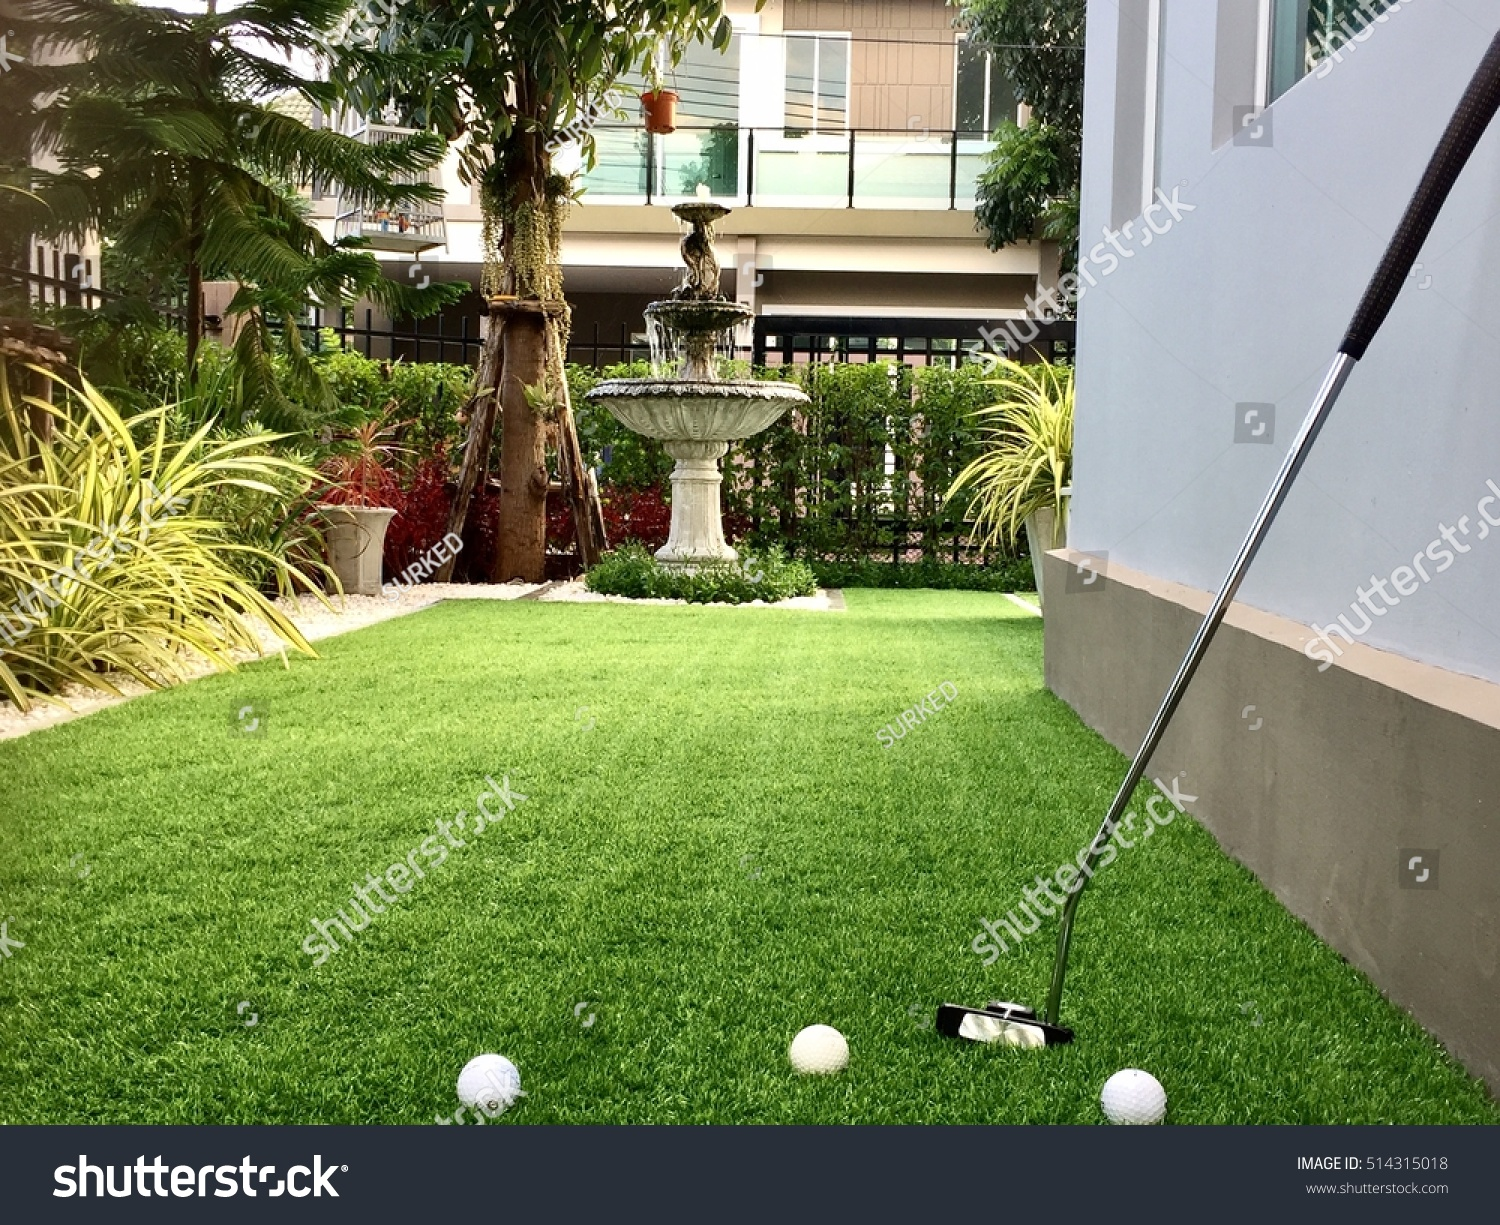 Home golf course architecture design grass stock photo for Golf course home designs